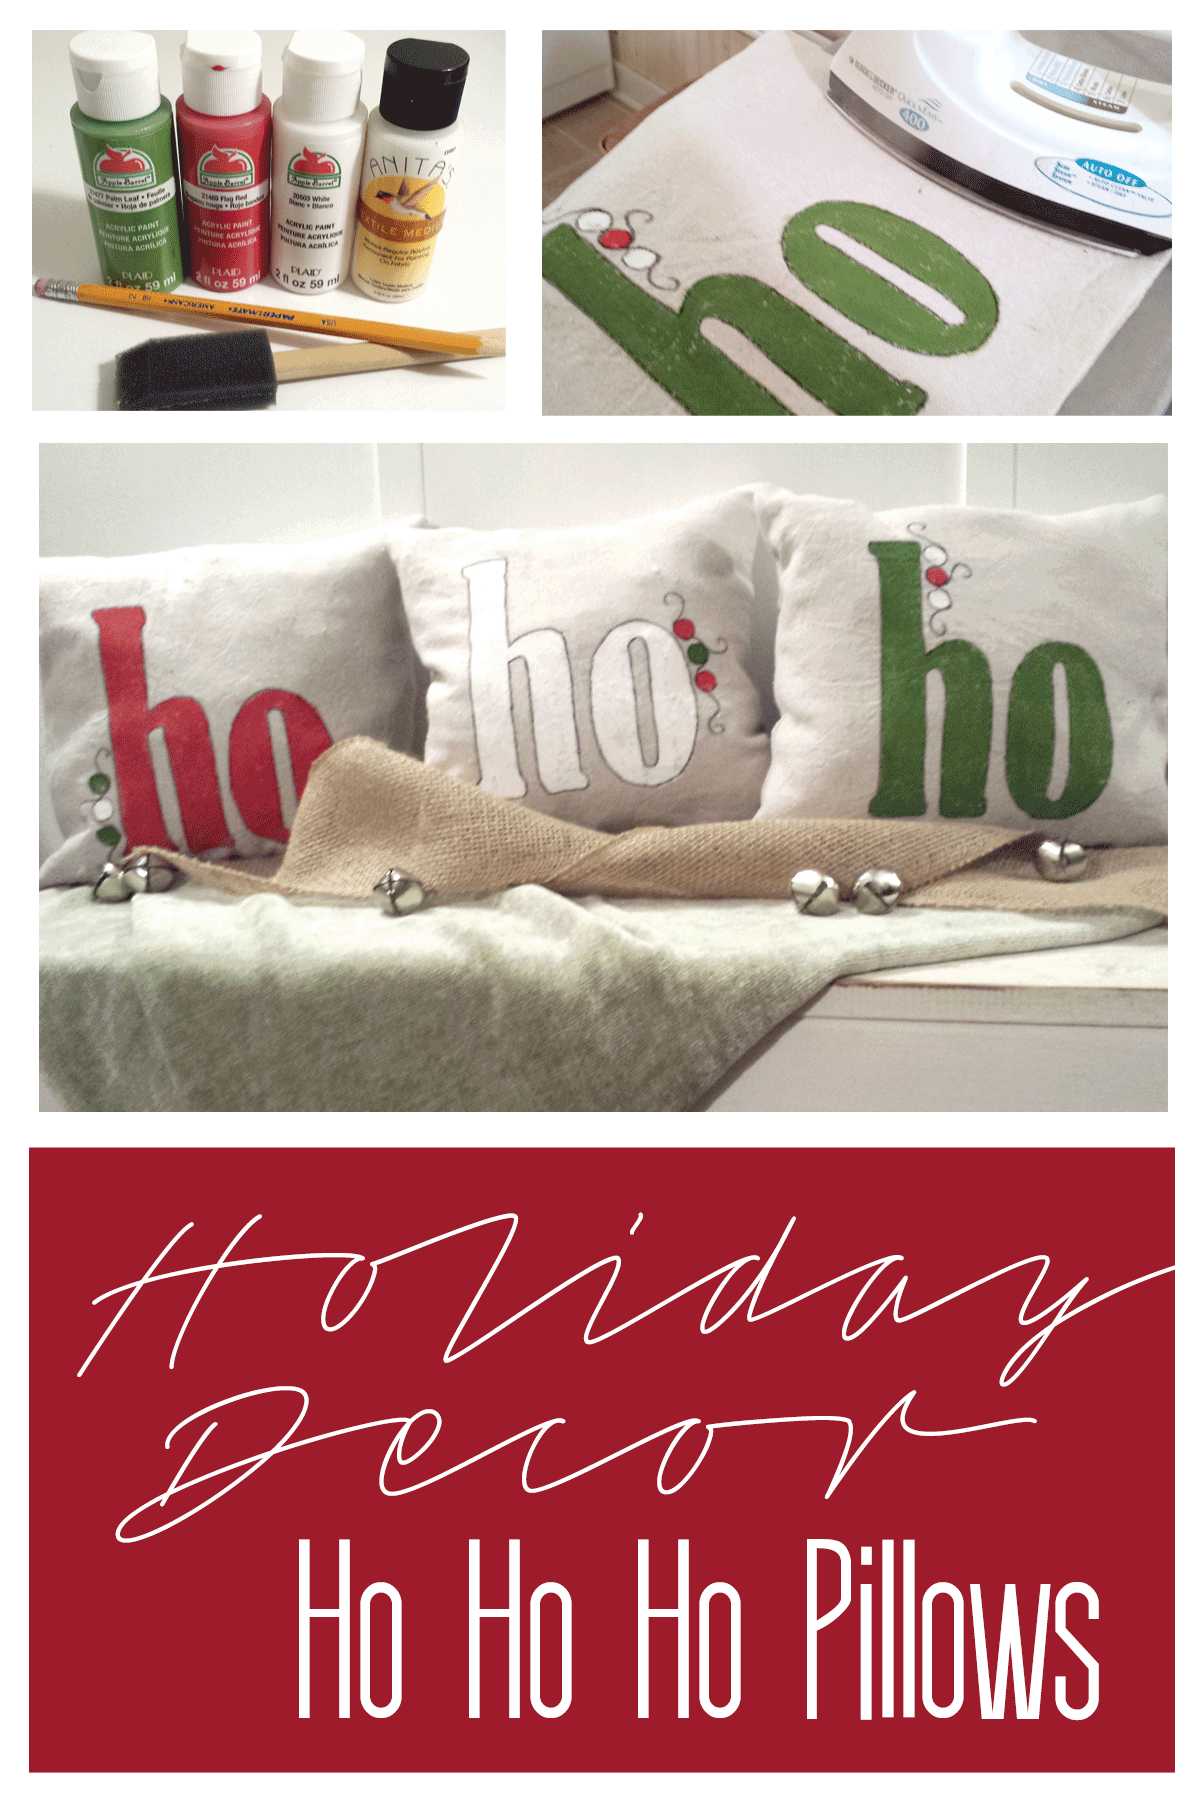 These holiday ho ho ho pillows are perfect for home holiday decor. - www.michellejdesigns.com